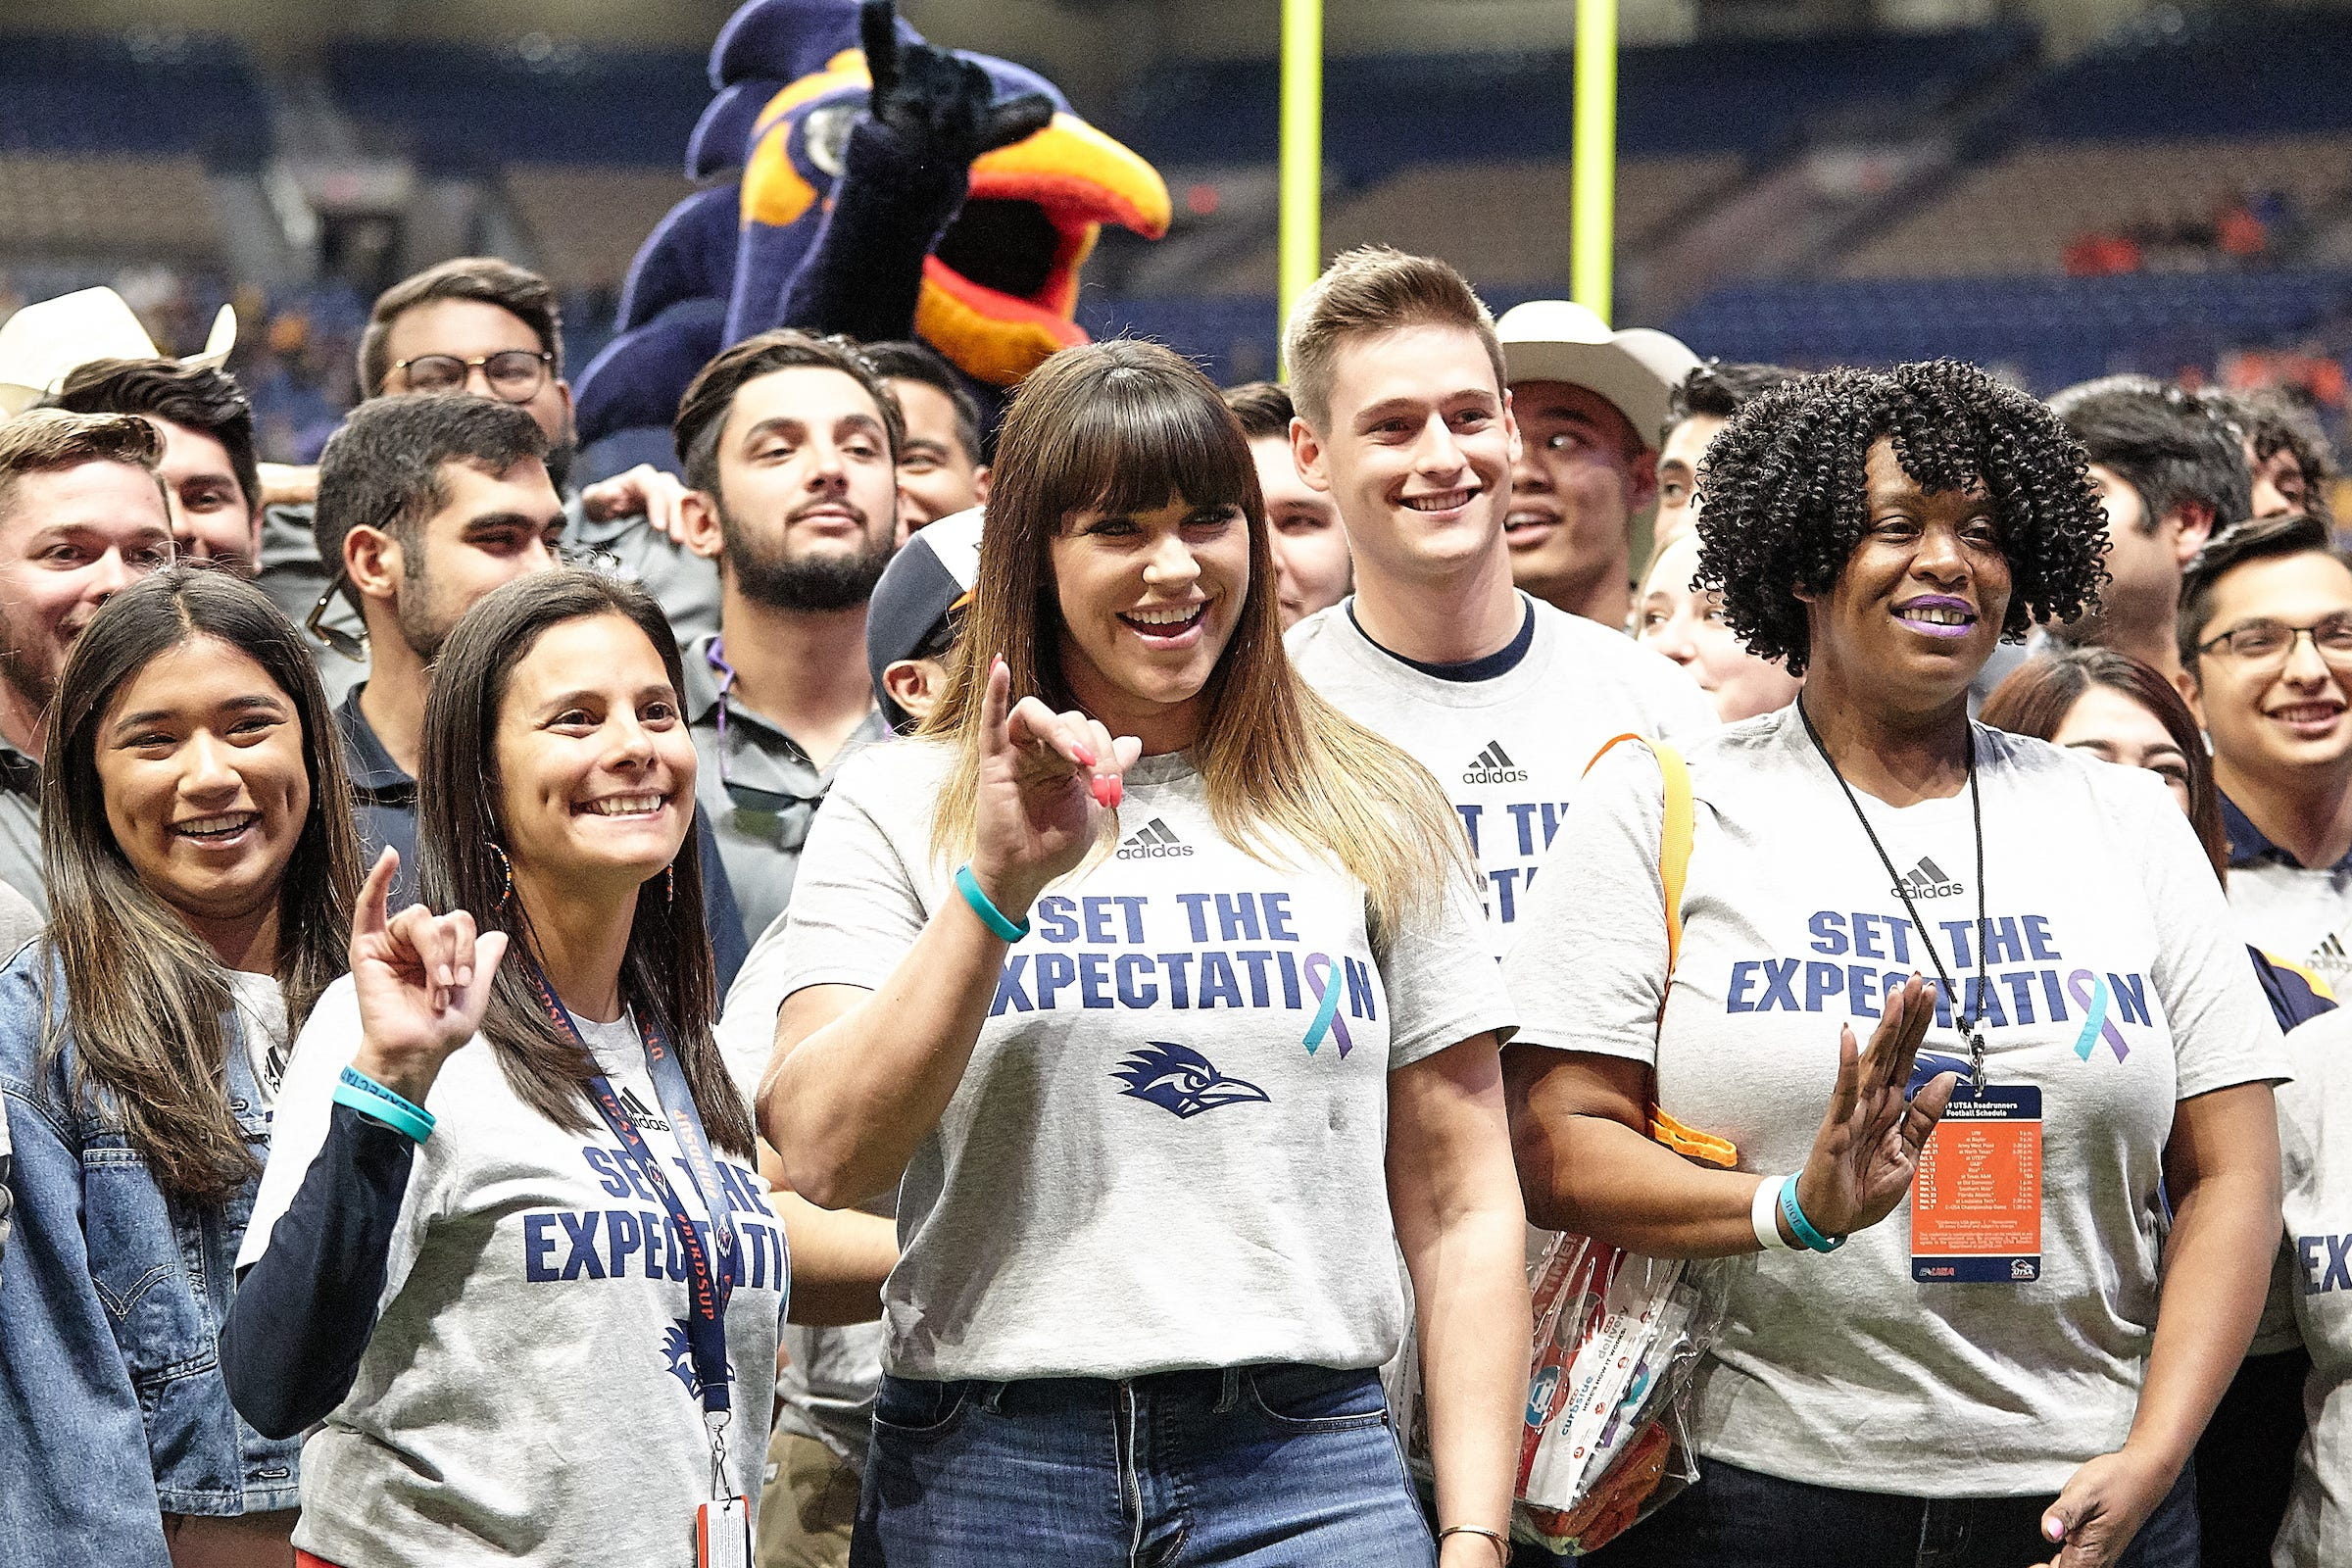 Brenda Tracy at the Alamodome where the University of Texas at San Antonio Roadrunners took on the University of Southern Mississippi Golden Eagles on Nov. 16, 2019.